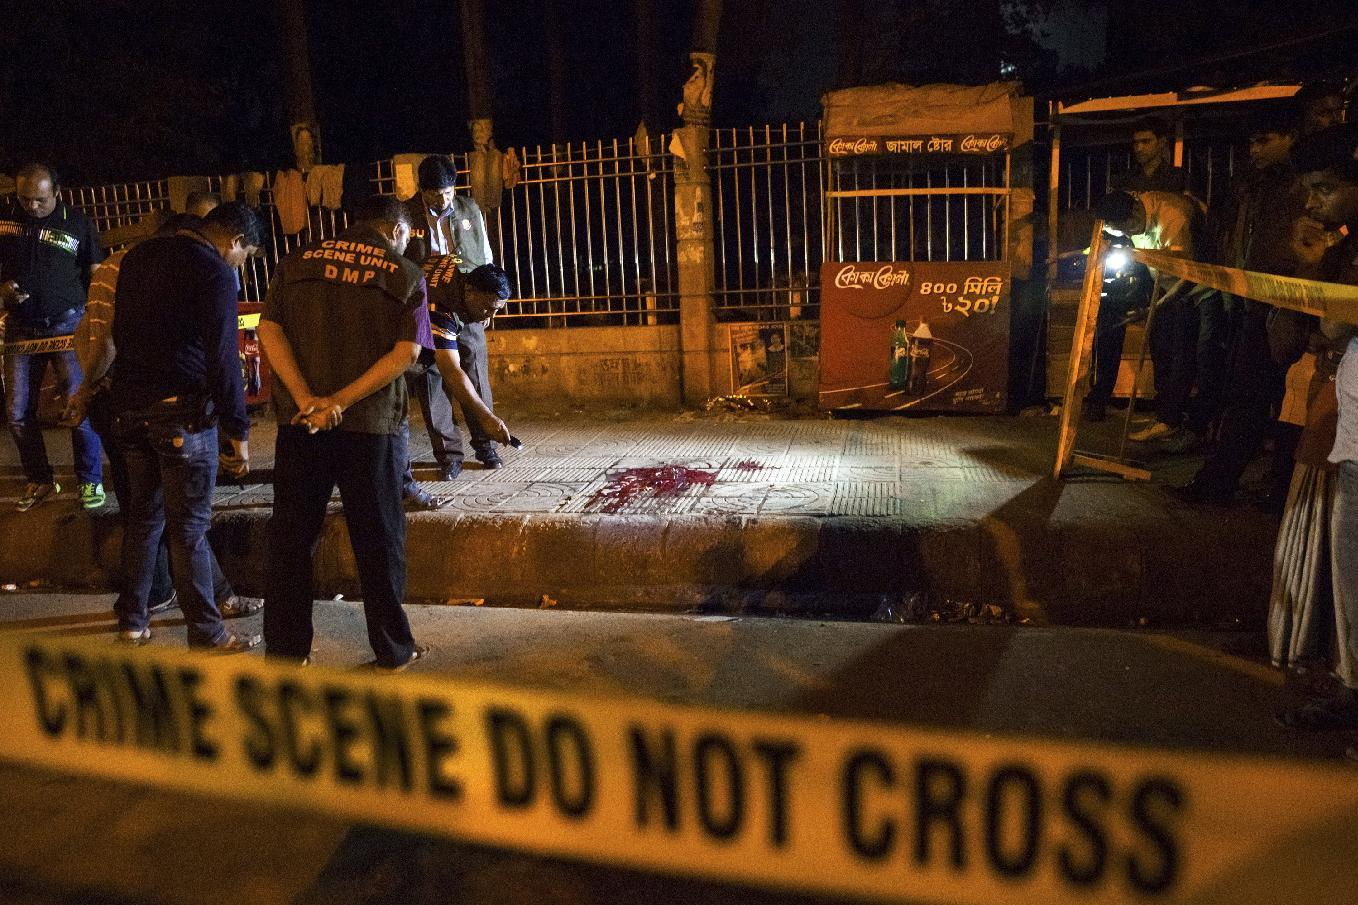 Attackers hack American blogger to death in Bangladesh